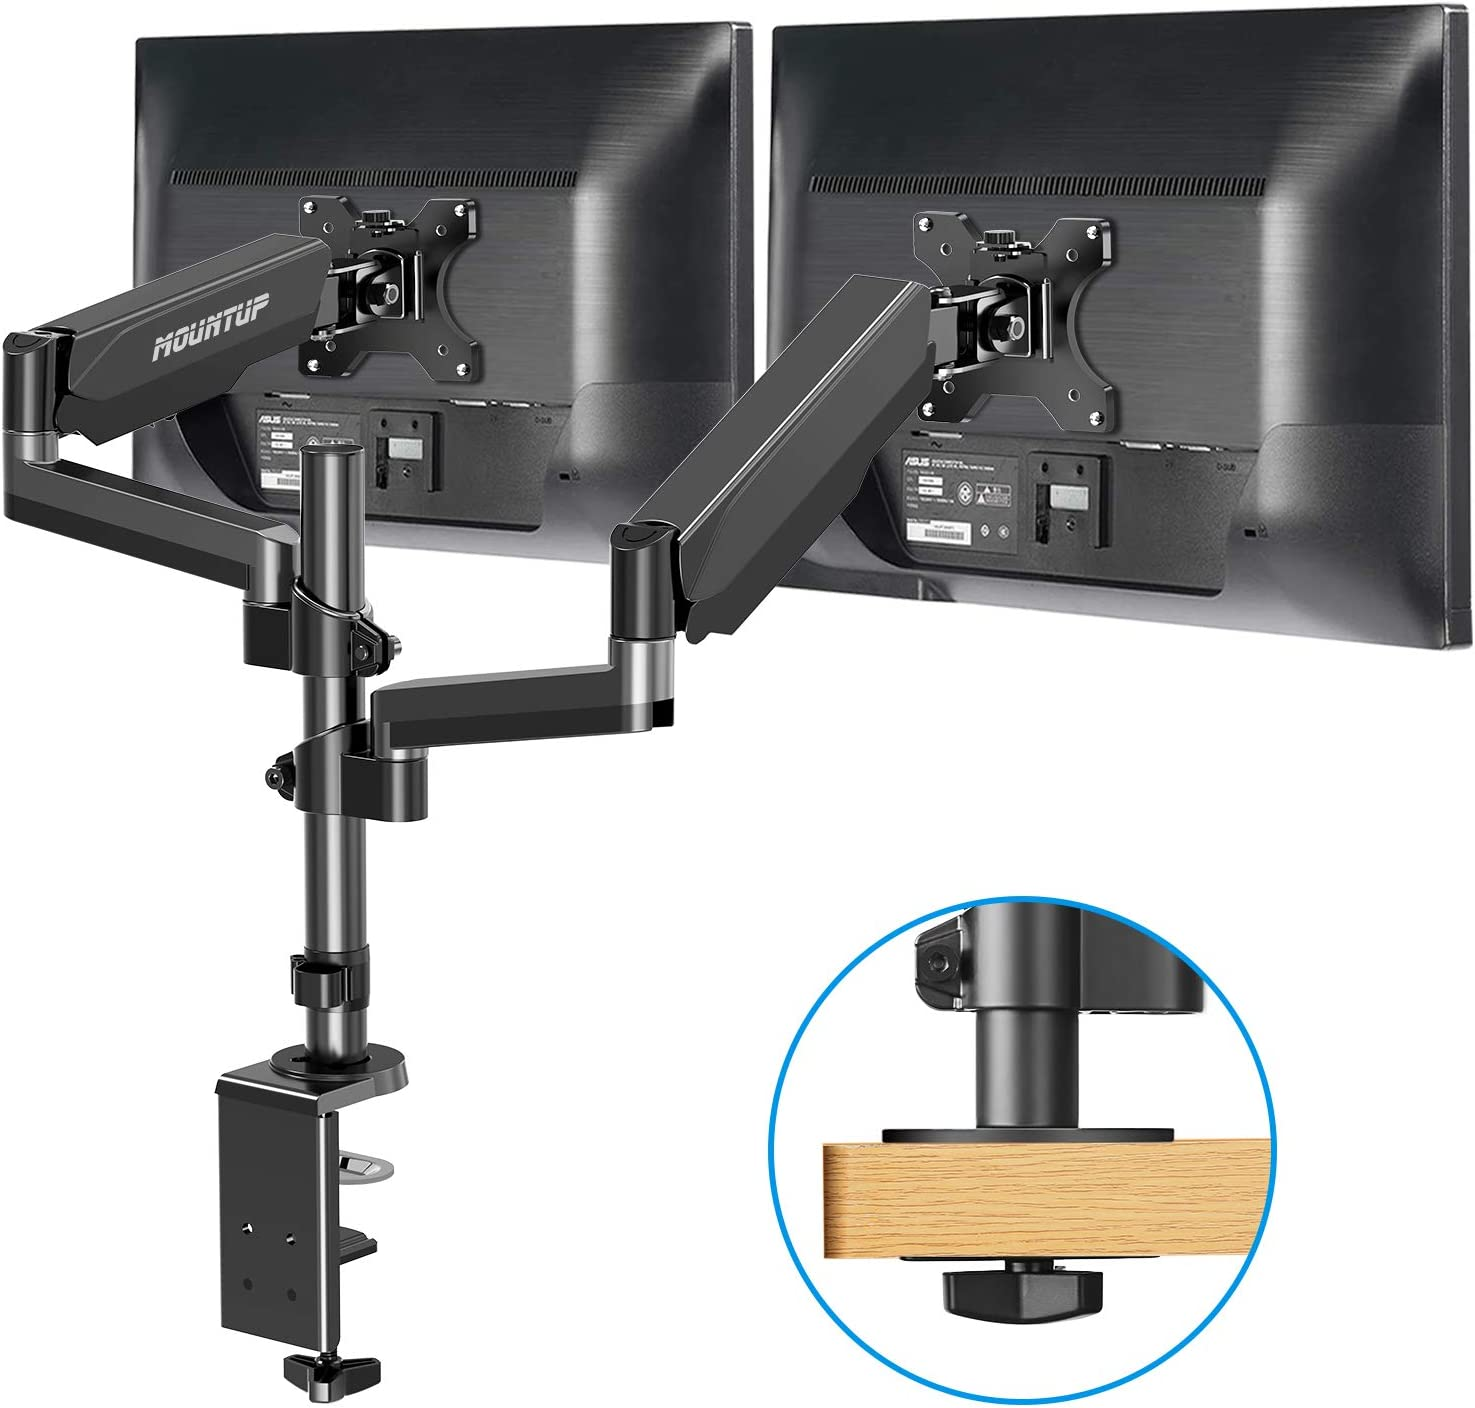 MOUNTUP Dual Monitor Mount Stand - Fully Adjustable Monitor Arm with Gas Spring, Monitor Desk Mount for 2 Computer Screens up to 32 Inch Weighting 17.6 lbs, VESA Monitor Mount Supports Vertical Stack